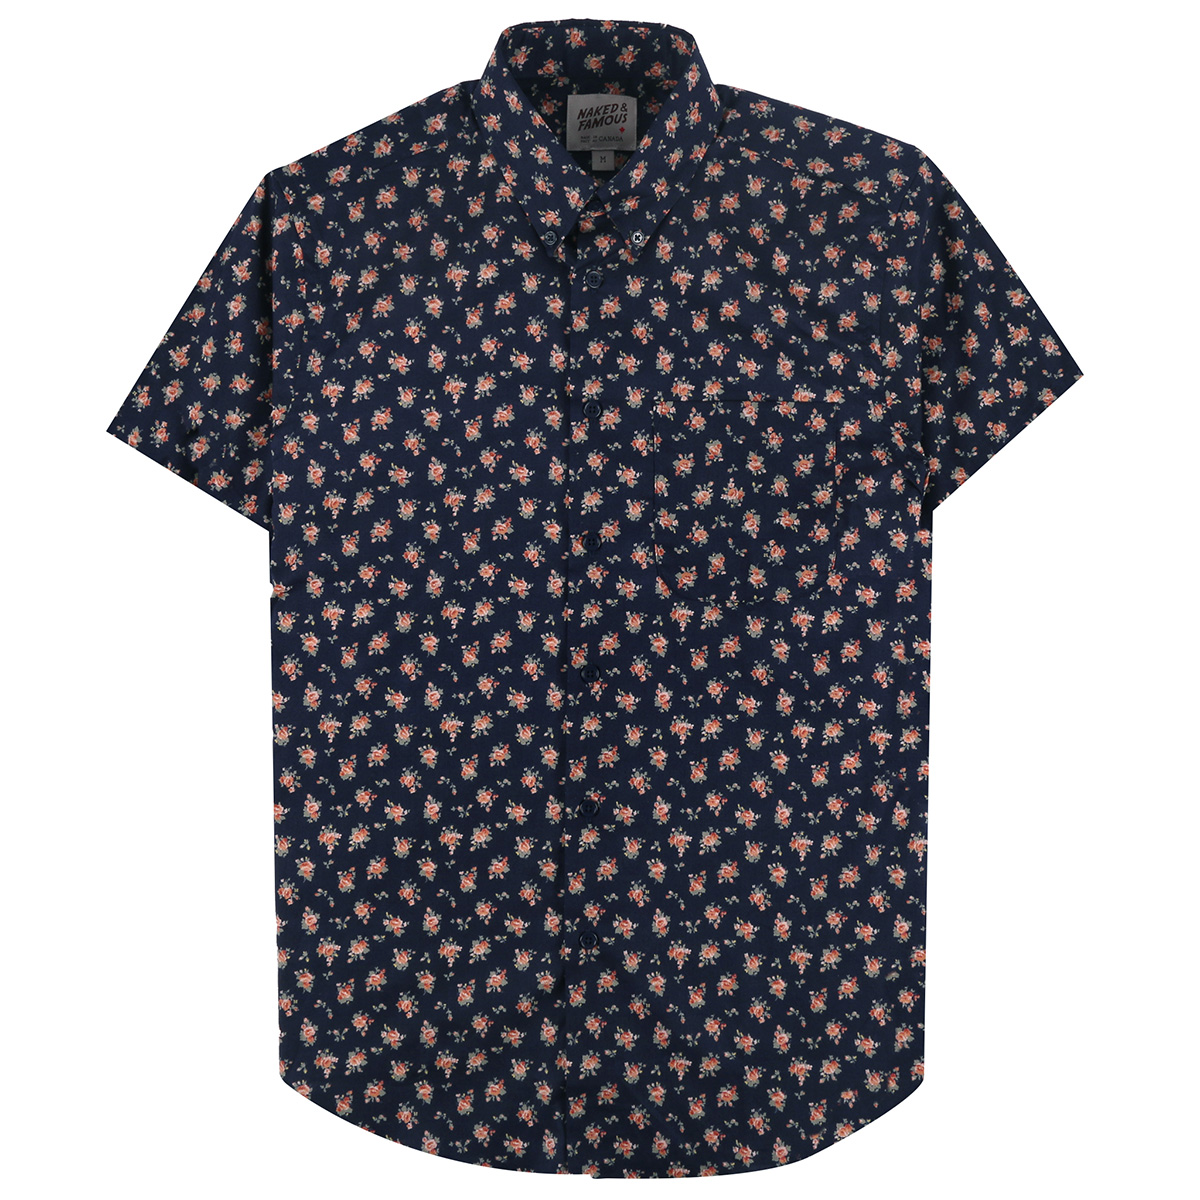 FLOWER PRINT - NAVY - Short Sleeve Easy Shirt